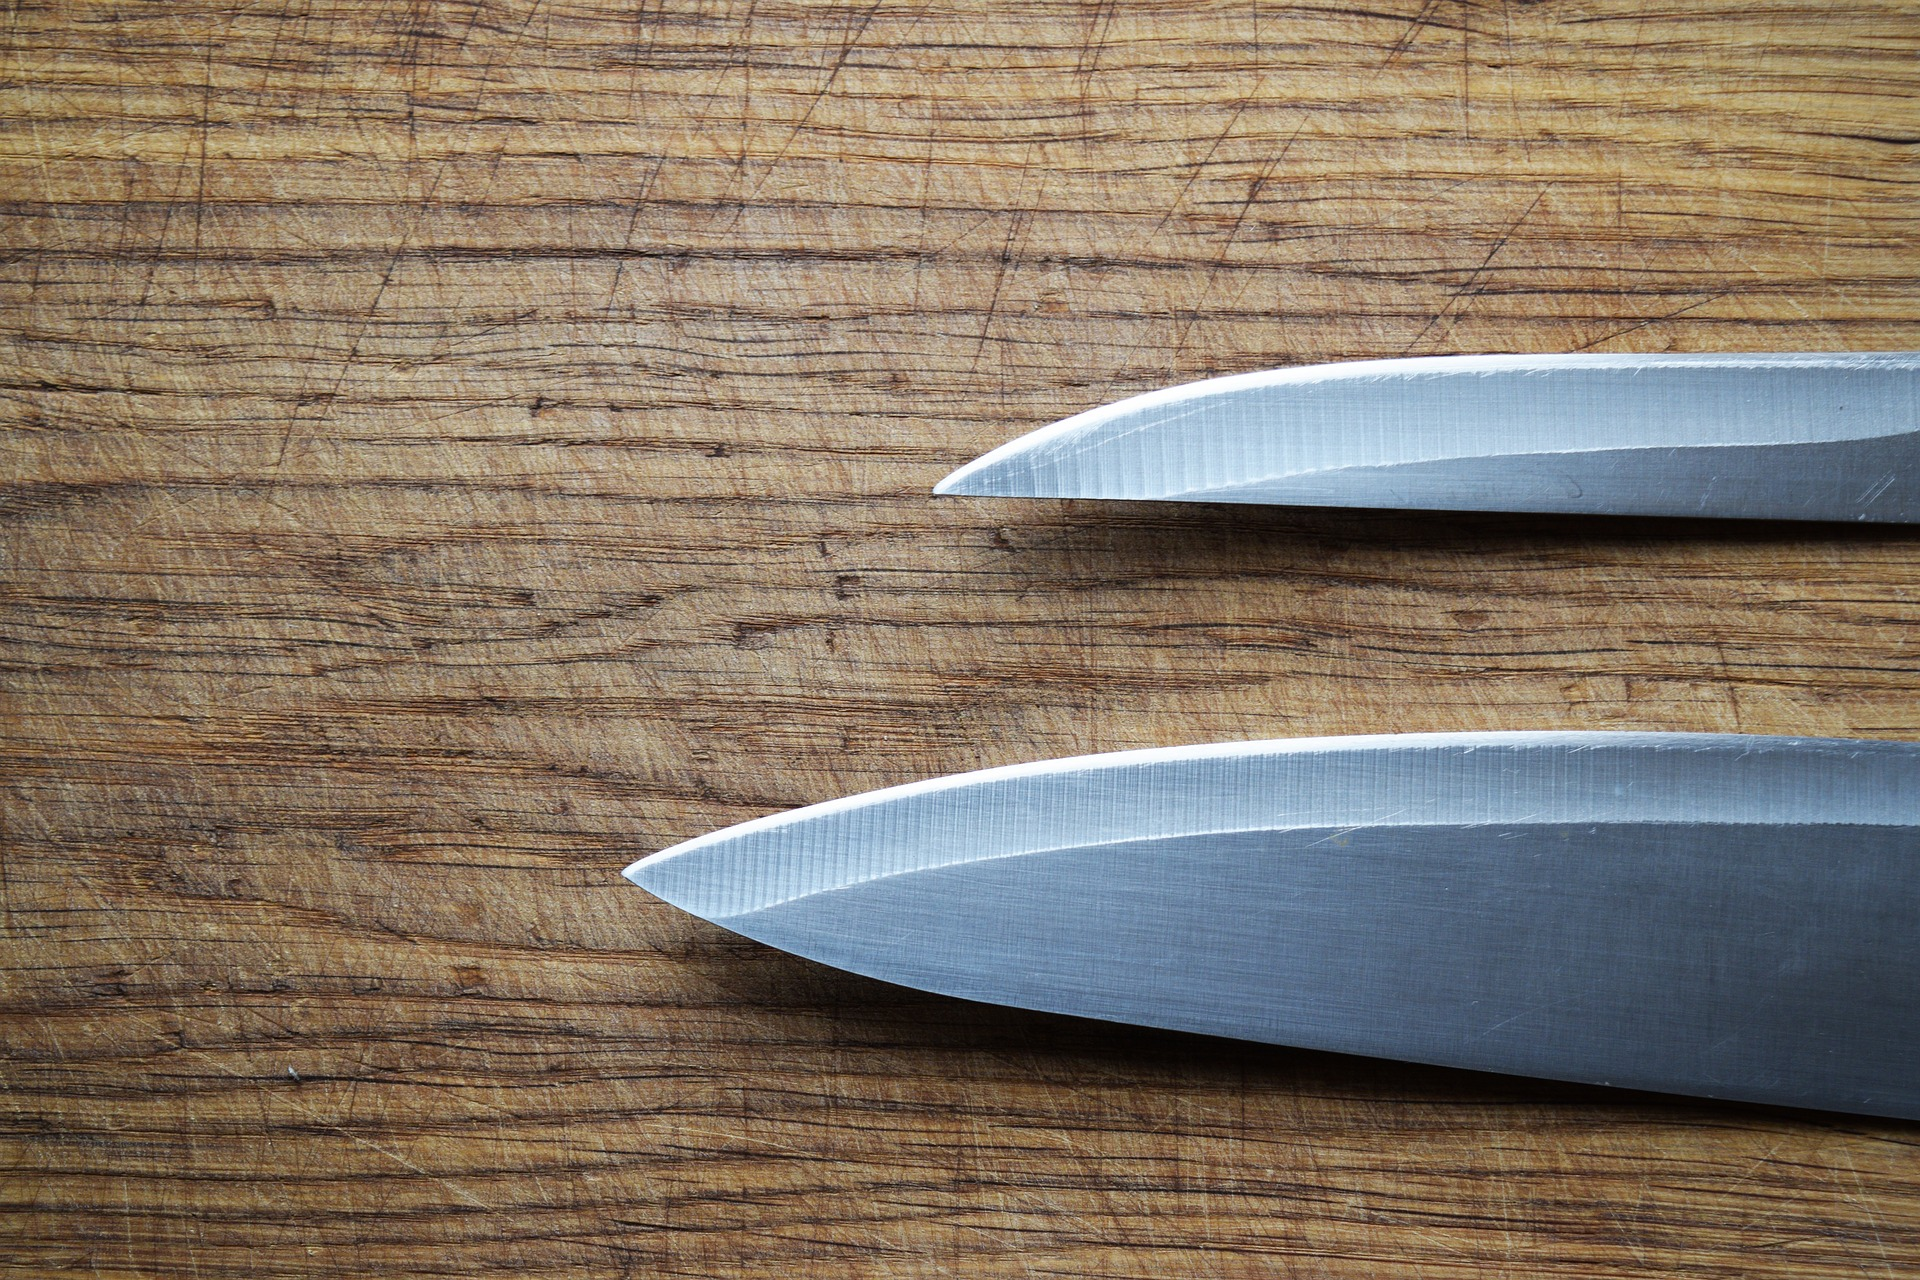 sharp kitchen knives causing injury is one of the top food myths